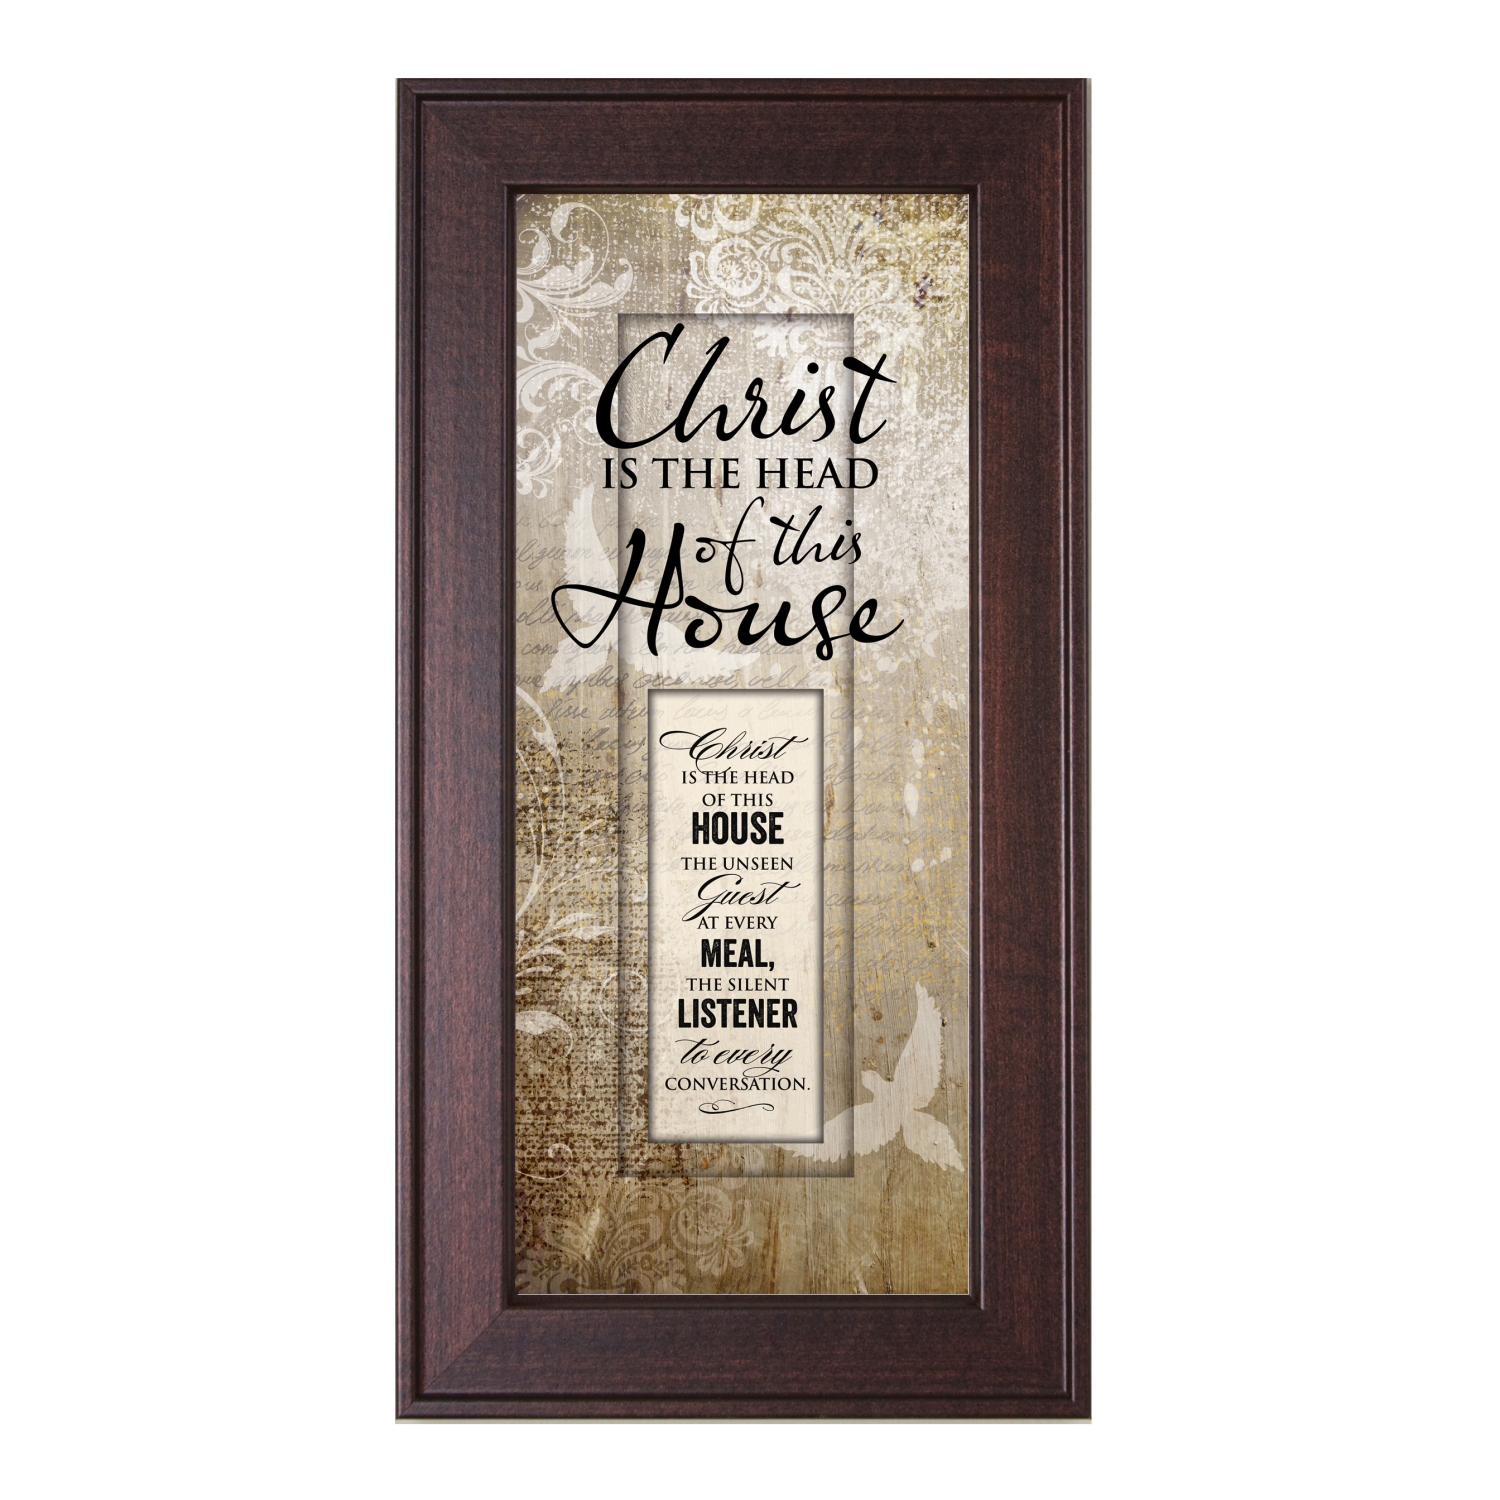 Christ Is The Head Of This House Framed Wall Art